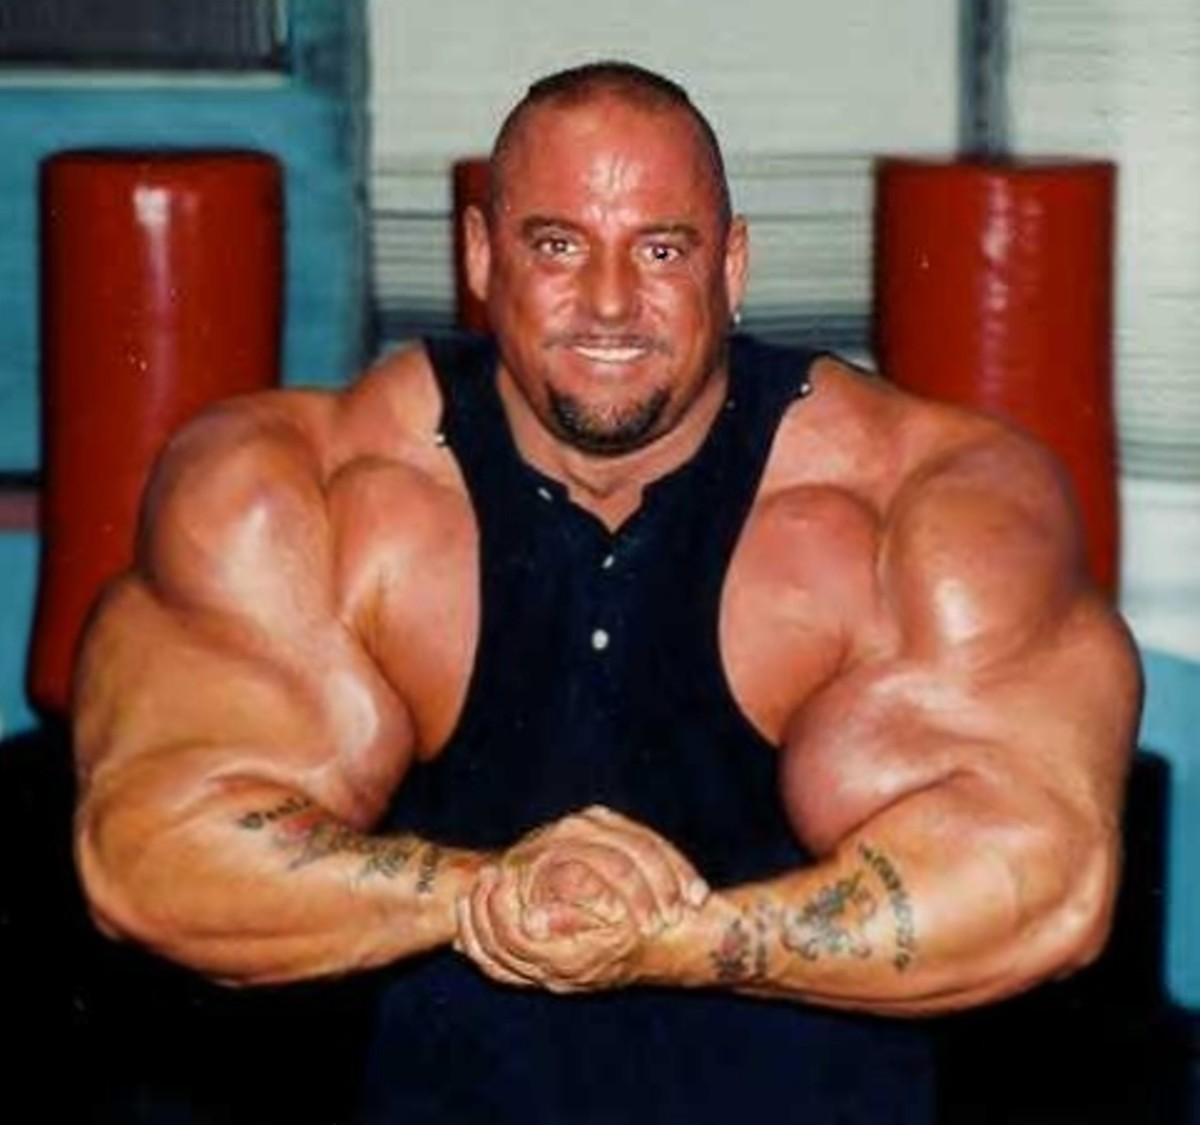 Those guns could be amazing, if not for steroids.